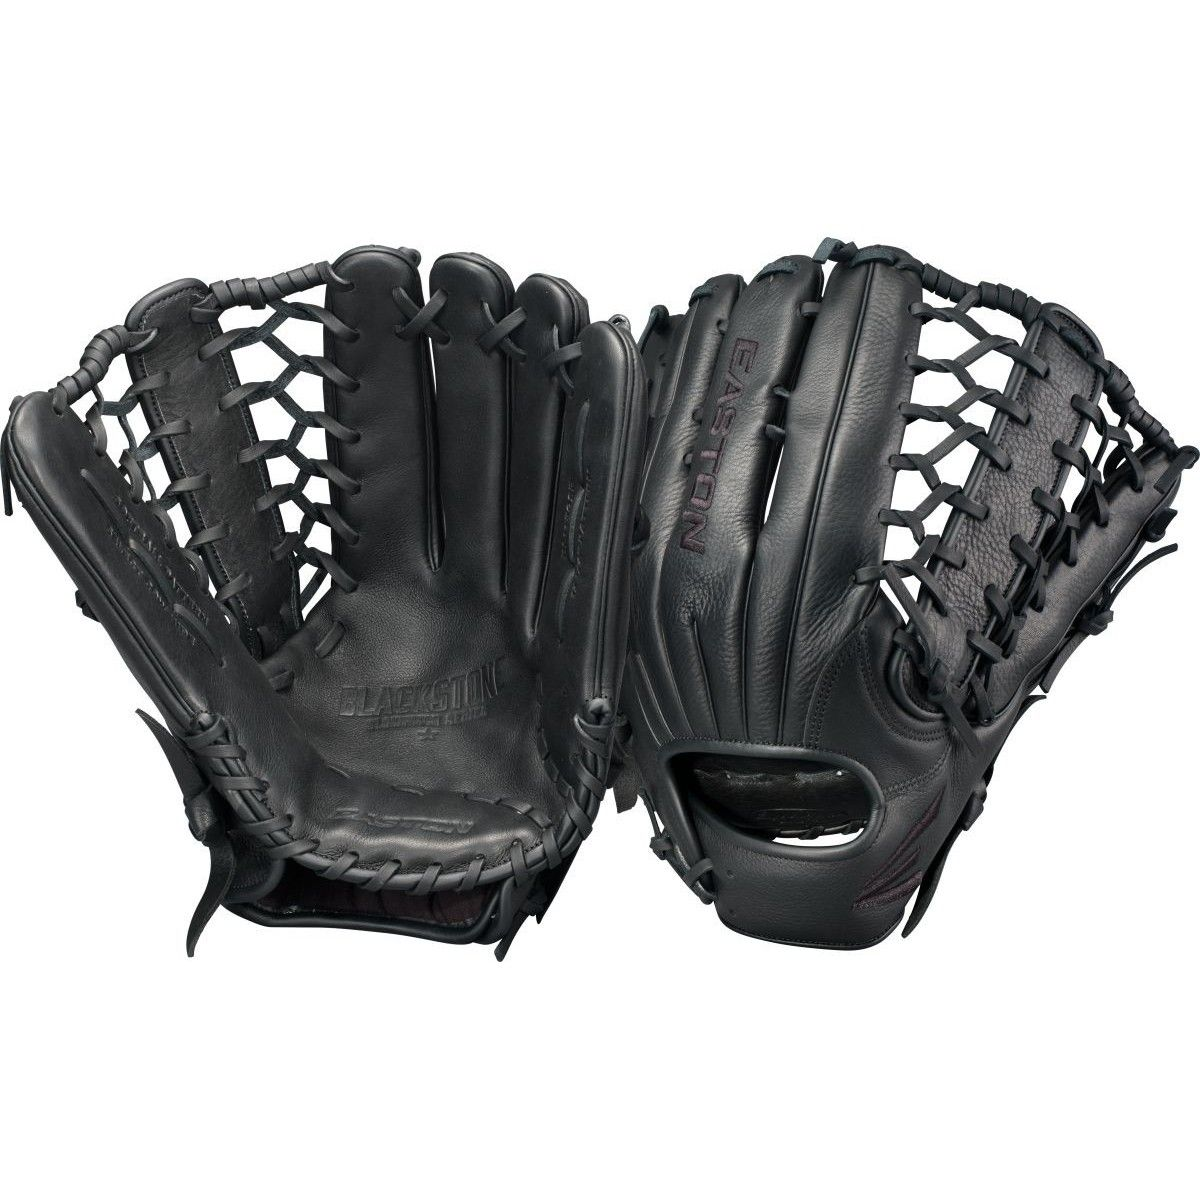 Easton Blackstone Slowpitch Series 13.5